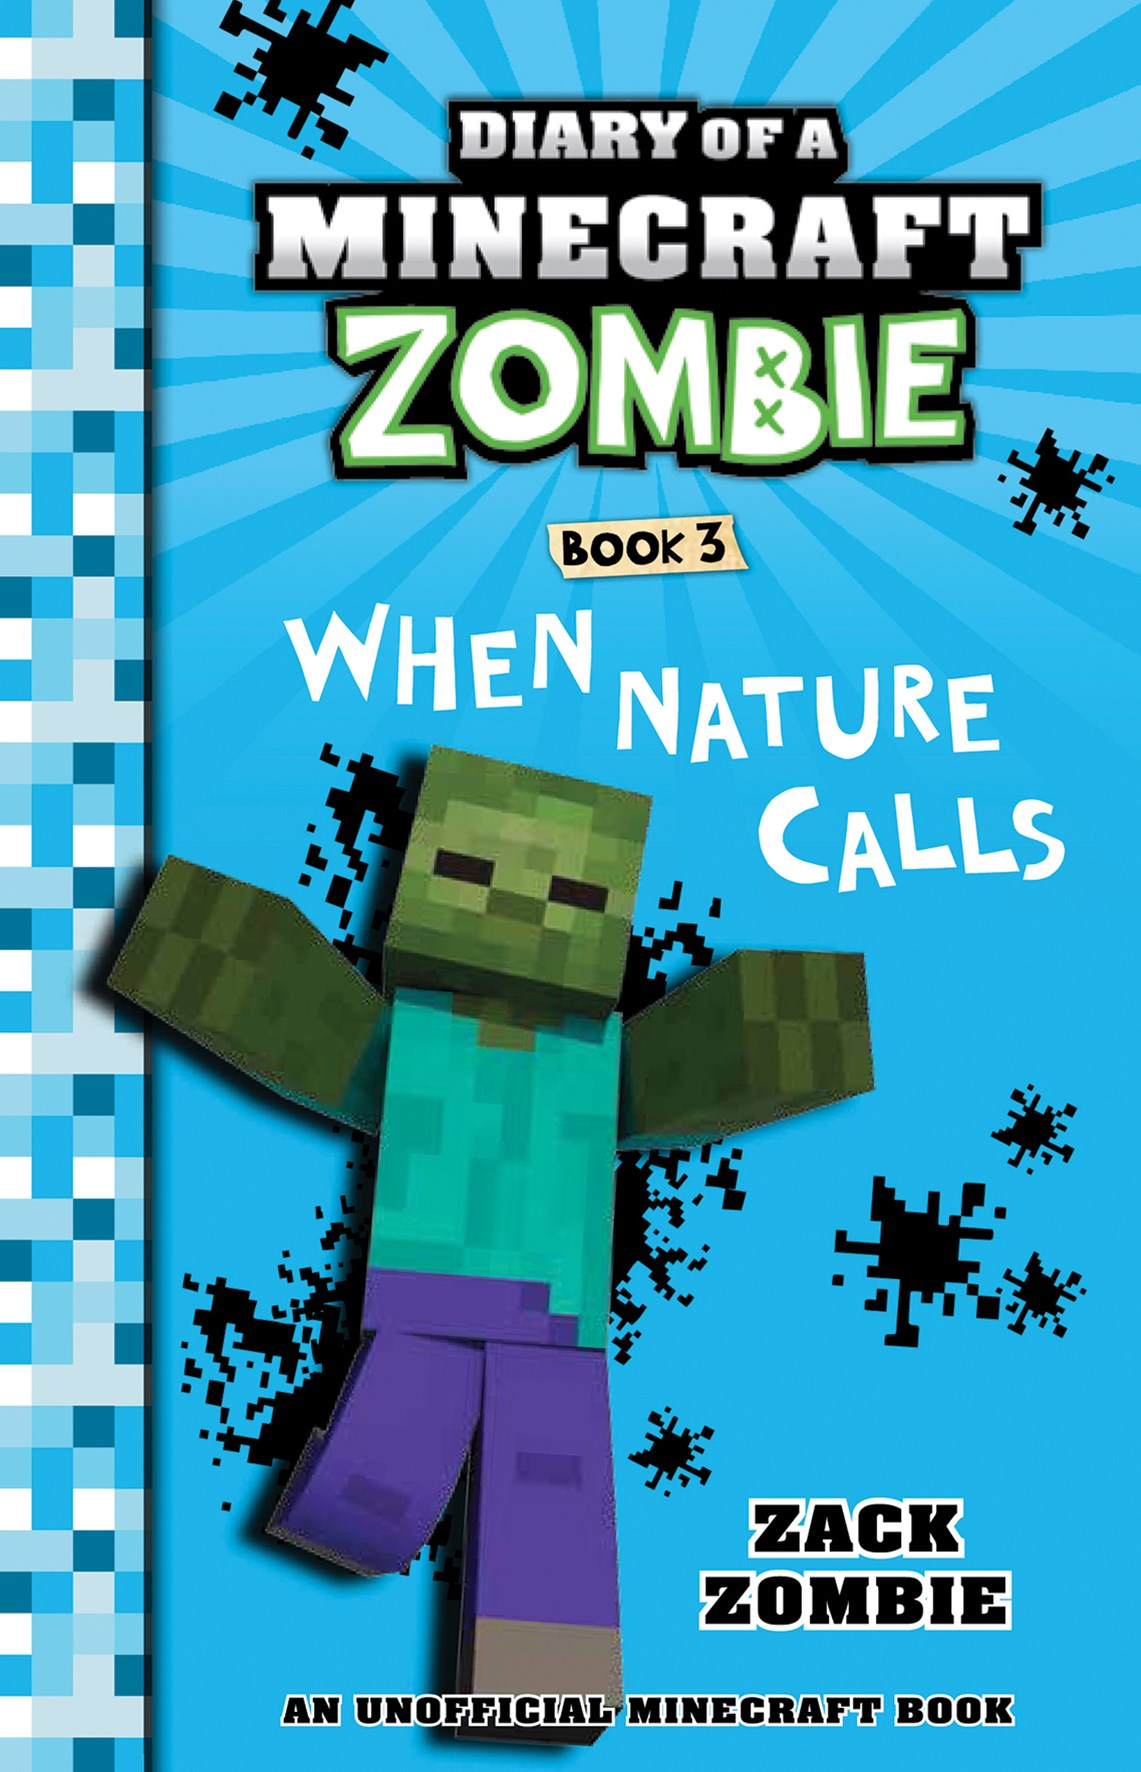 When Nature Calls (Book 3, Diary of a Minecraft Zombie)